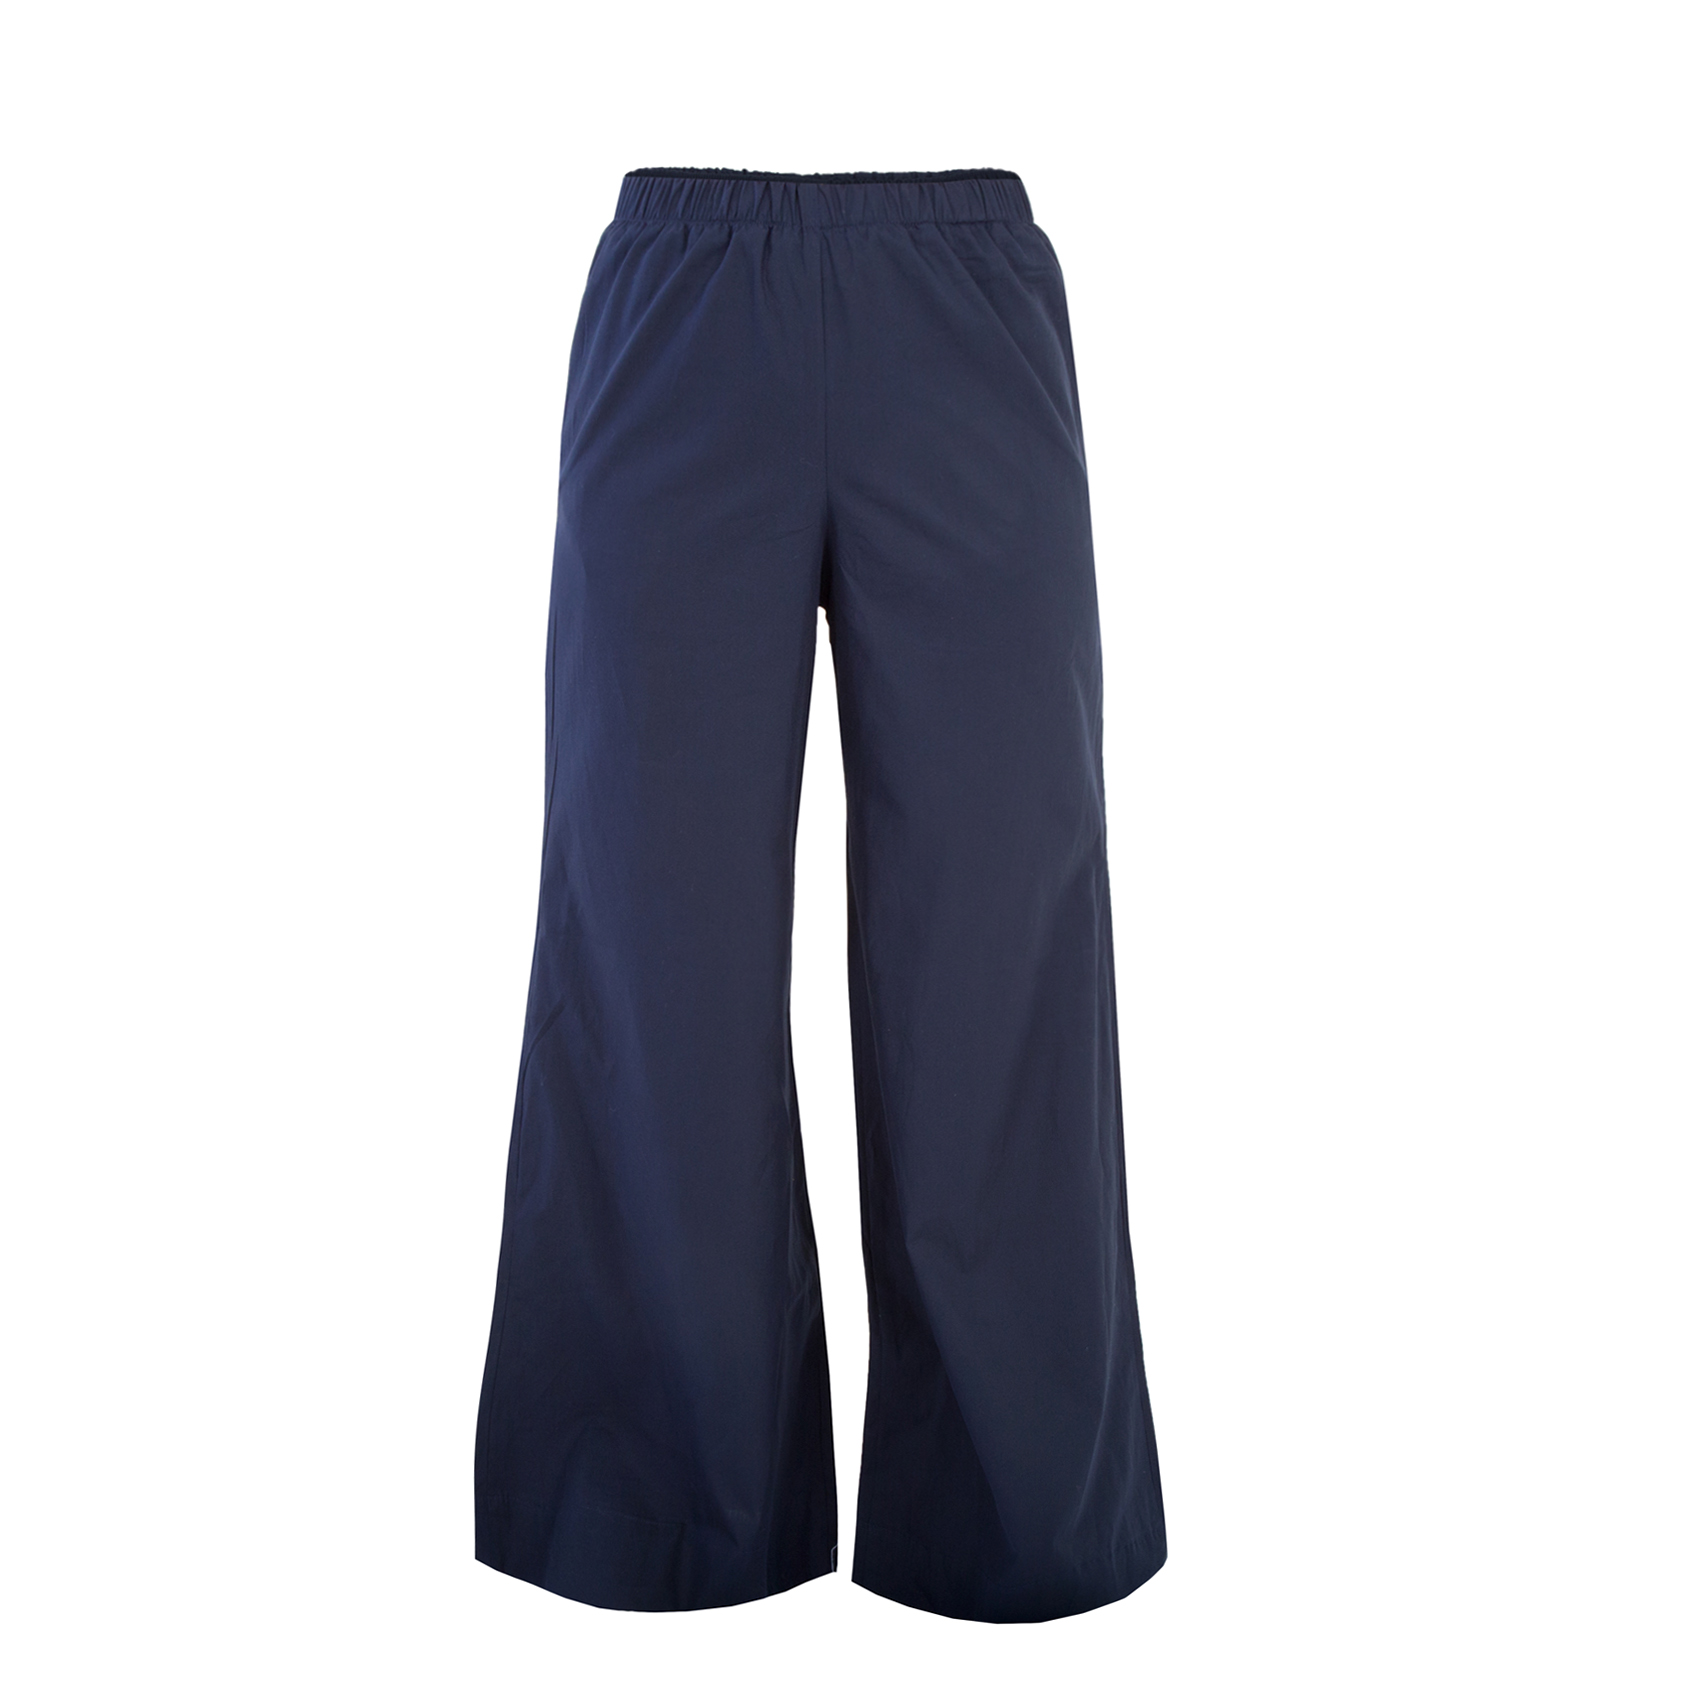 Picture of navy blue trousers